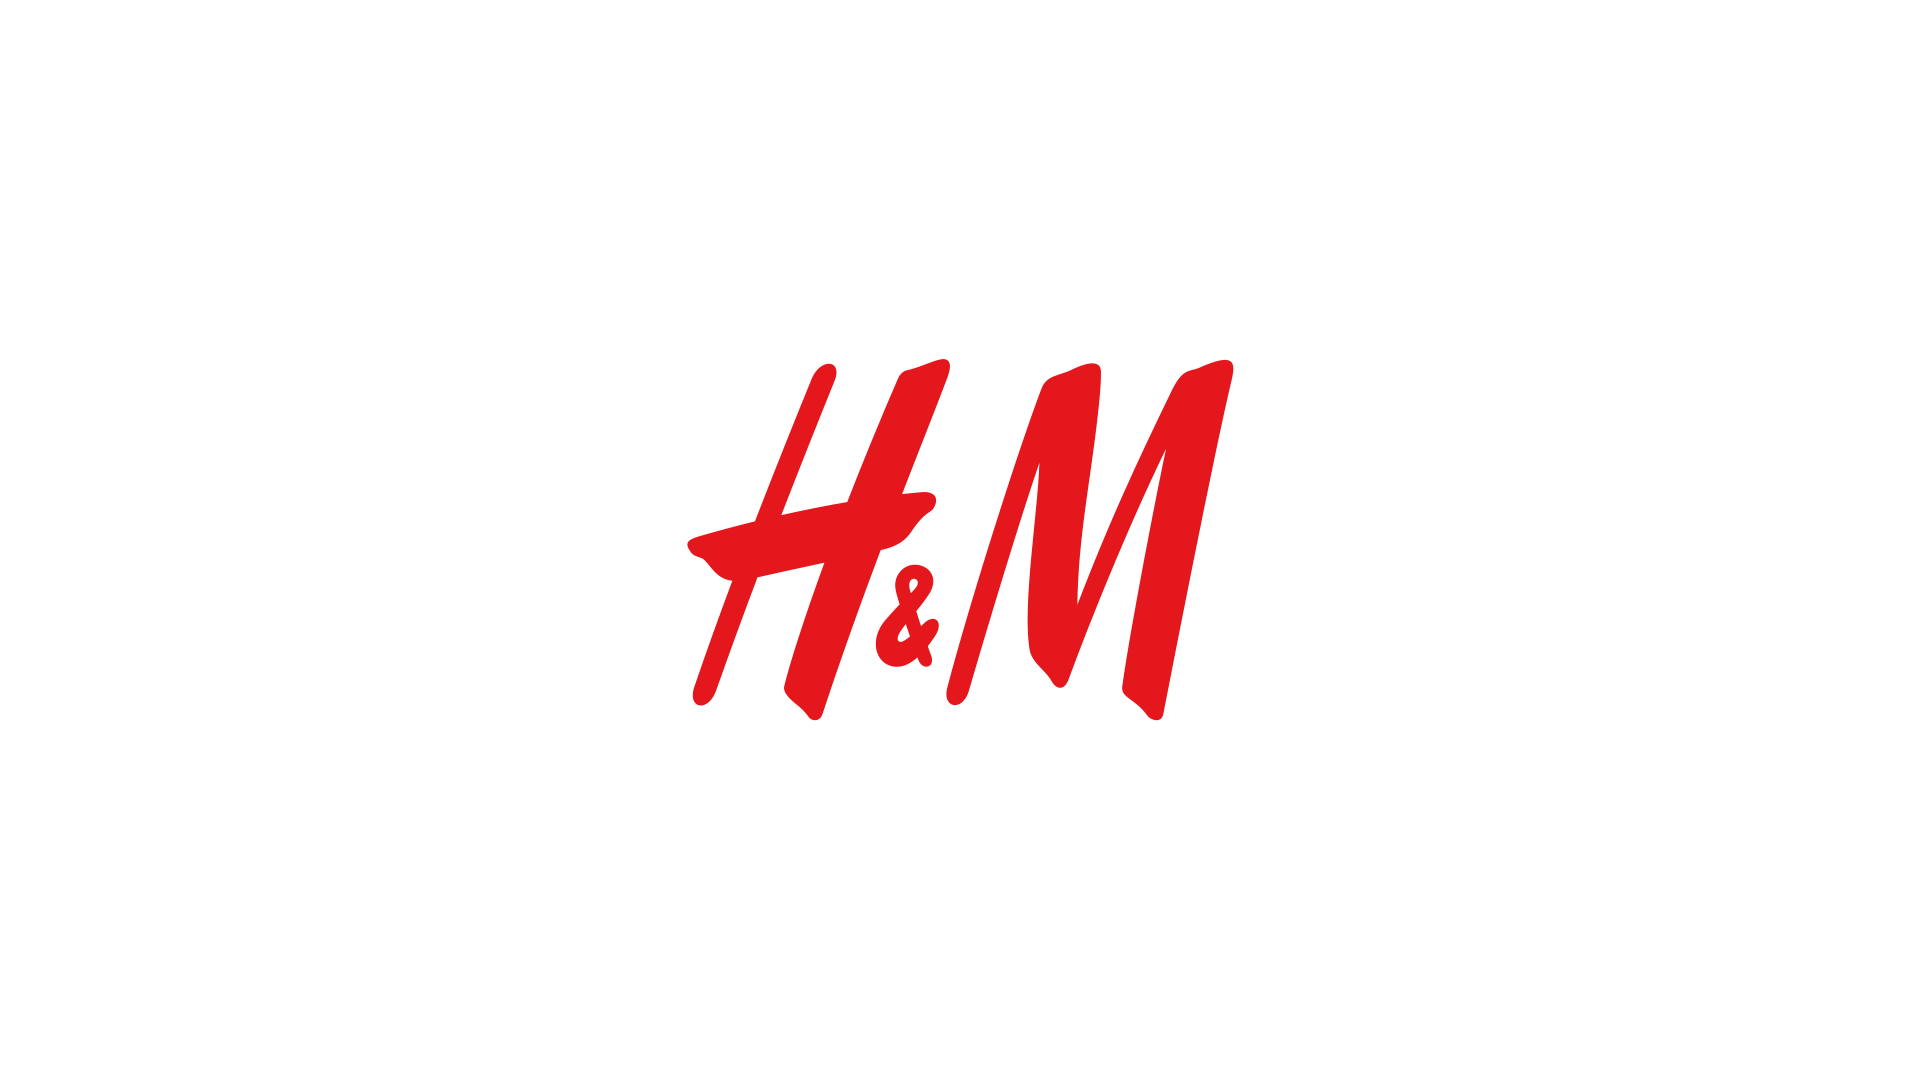 Find a job at h&m. Apply for h&m job opportunities from entry level to management positions at Monster.